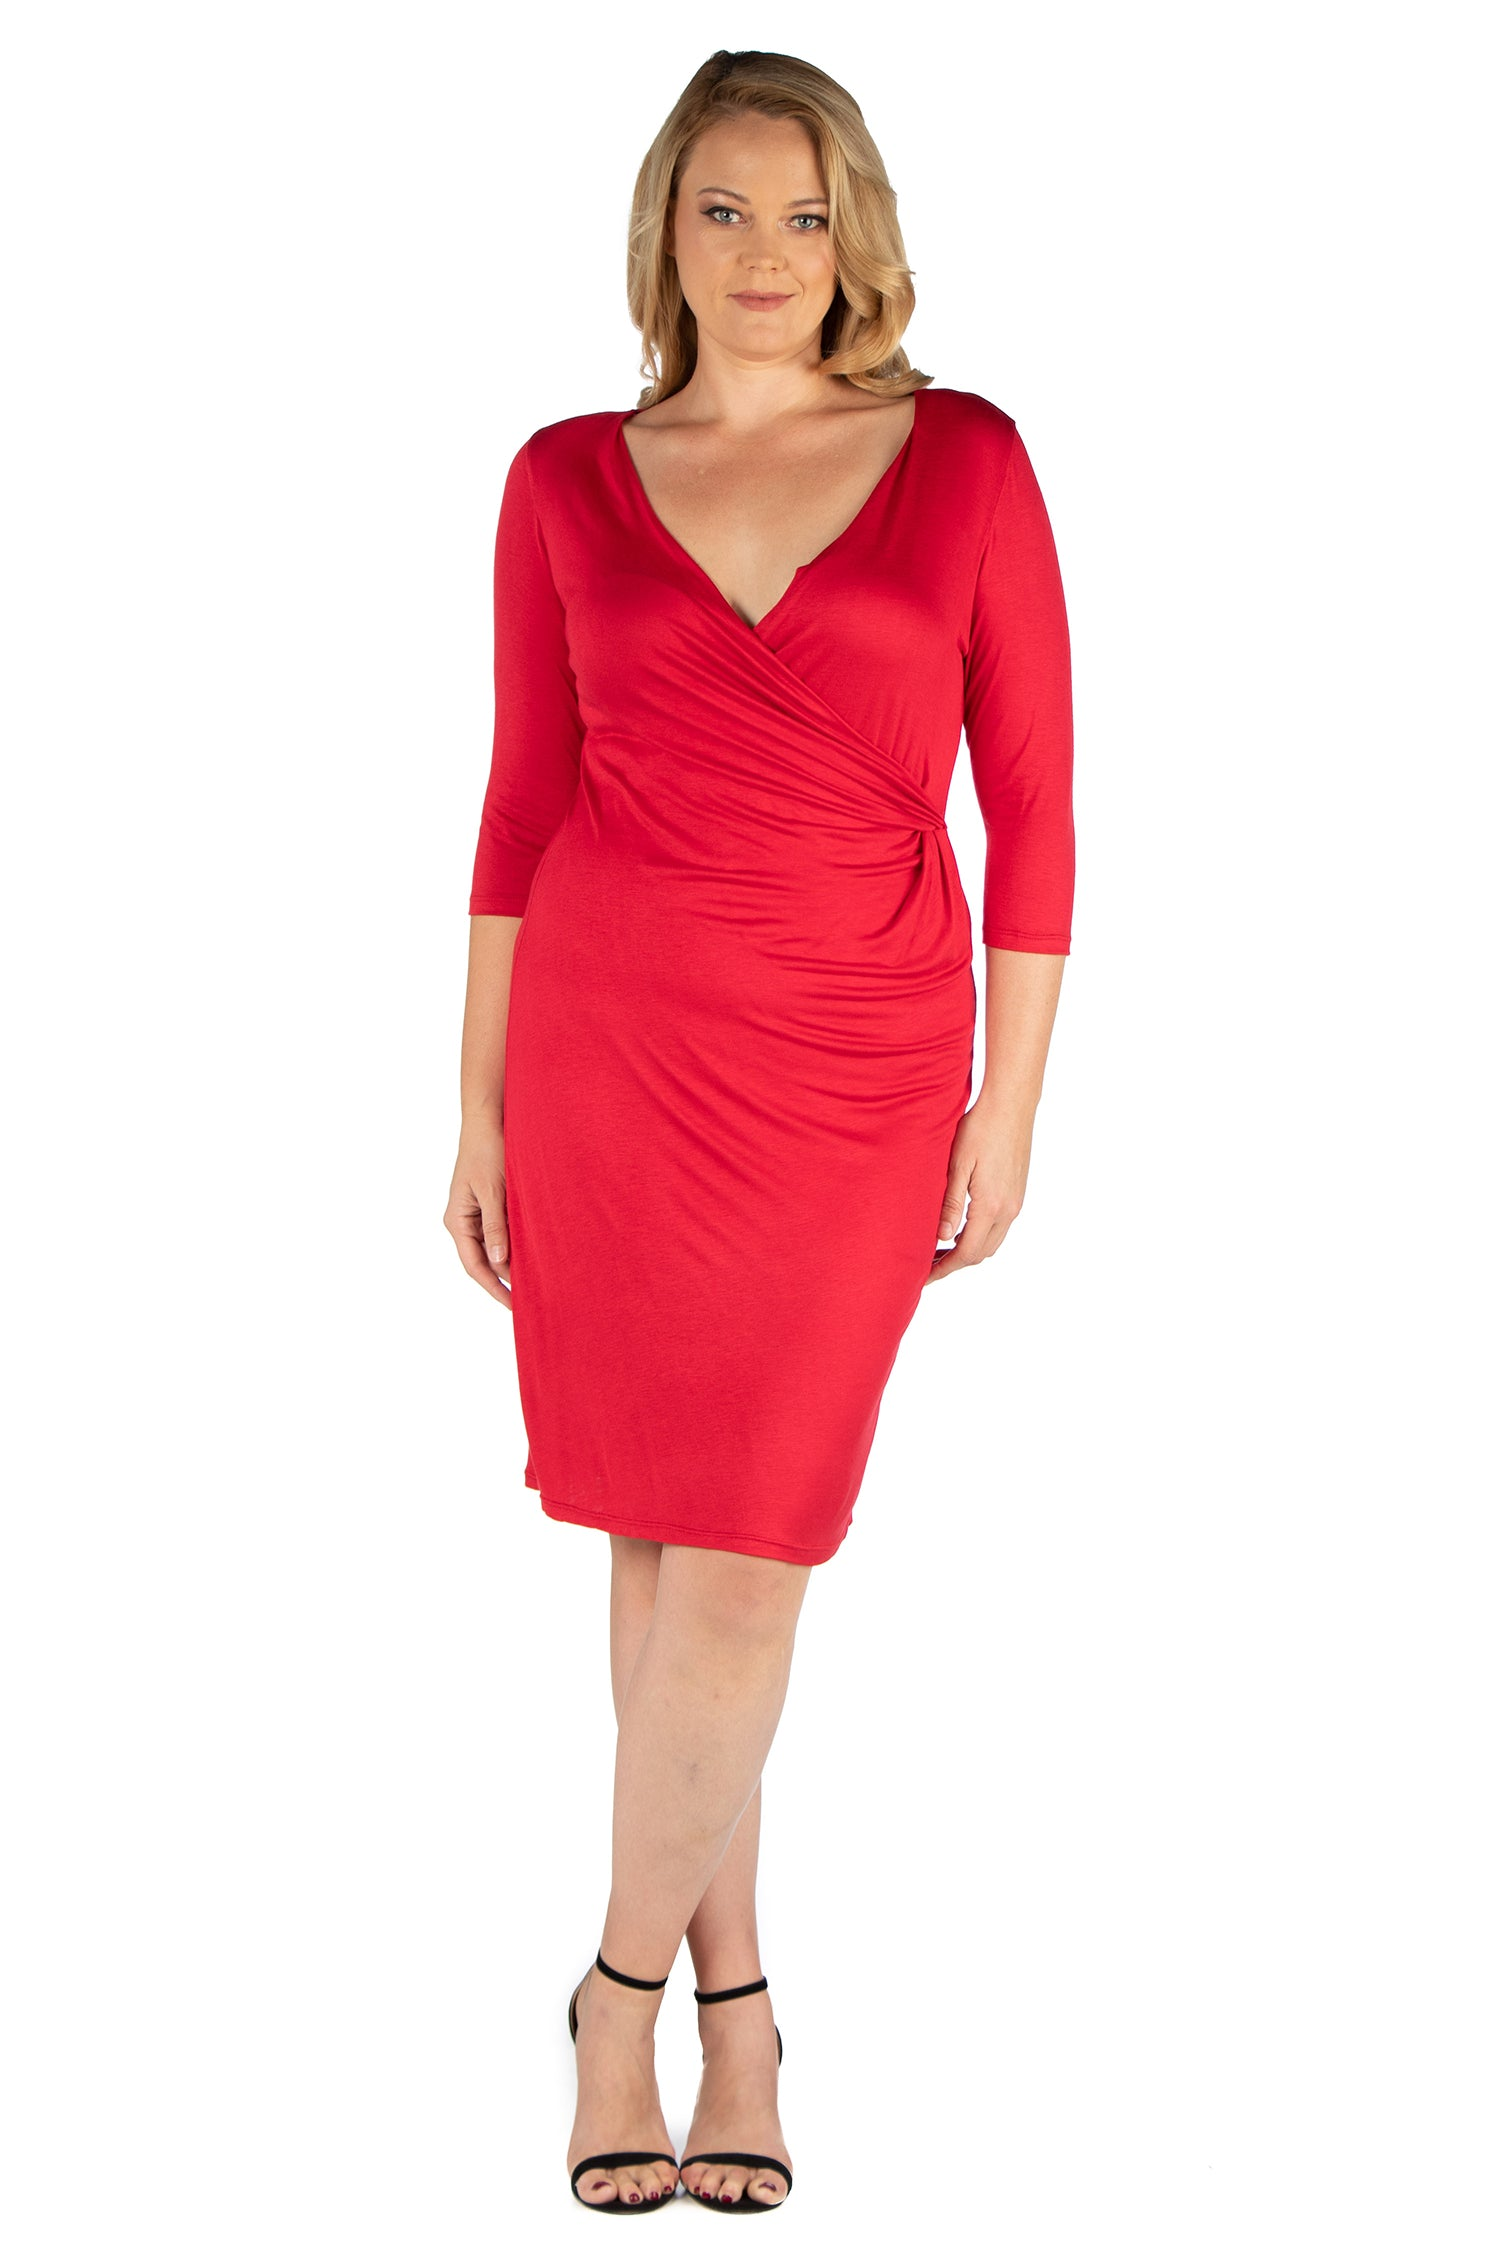 24seven Comfort Apparel Knee Length V Neck Plus Size Dress-DRESSES-24Seven Comfort Apparel-RED-1X-24/7 Comfort Apparel